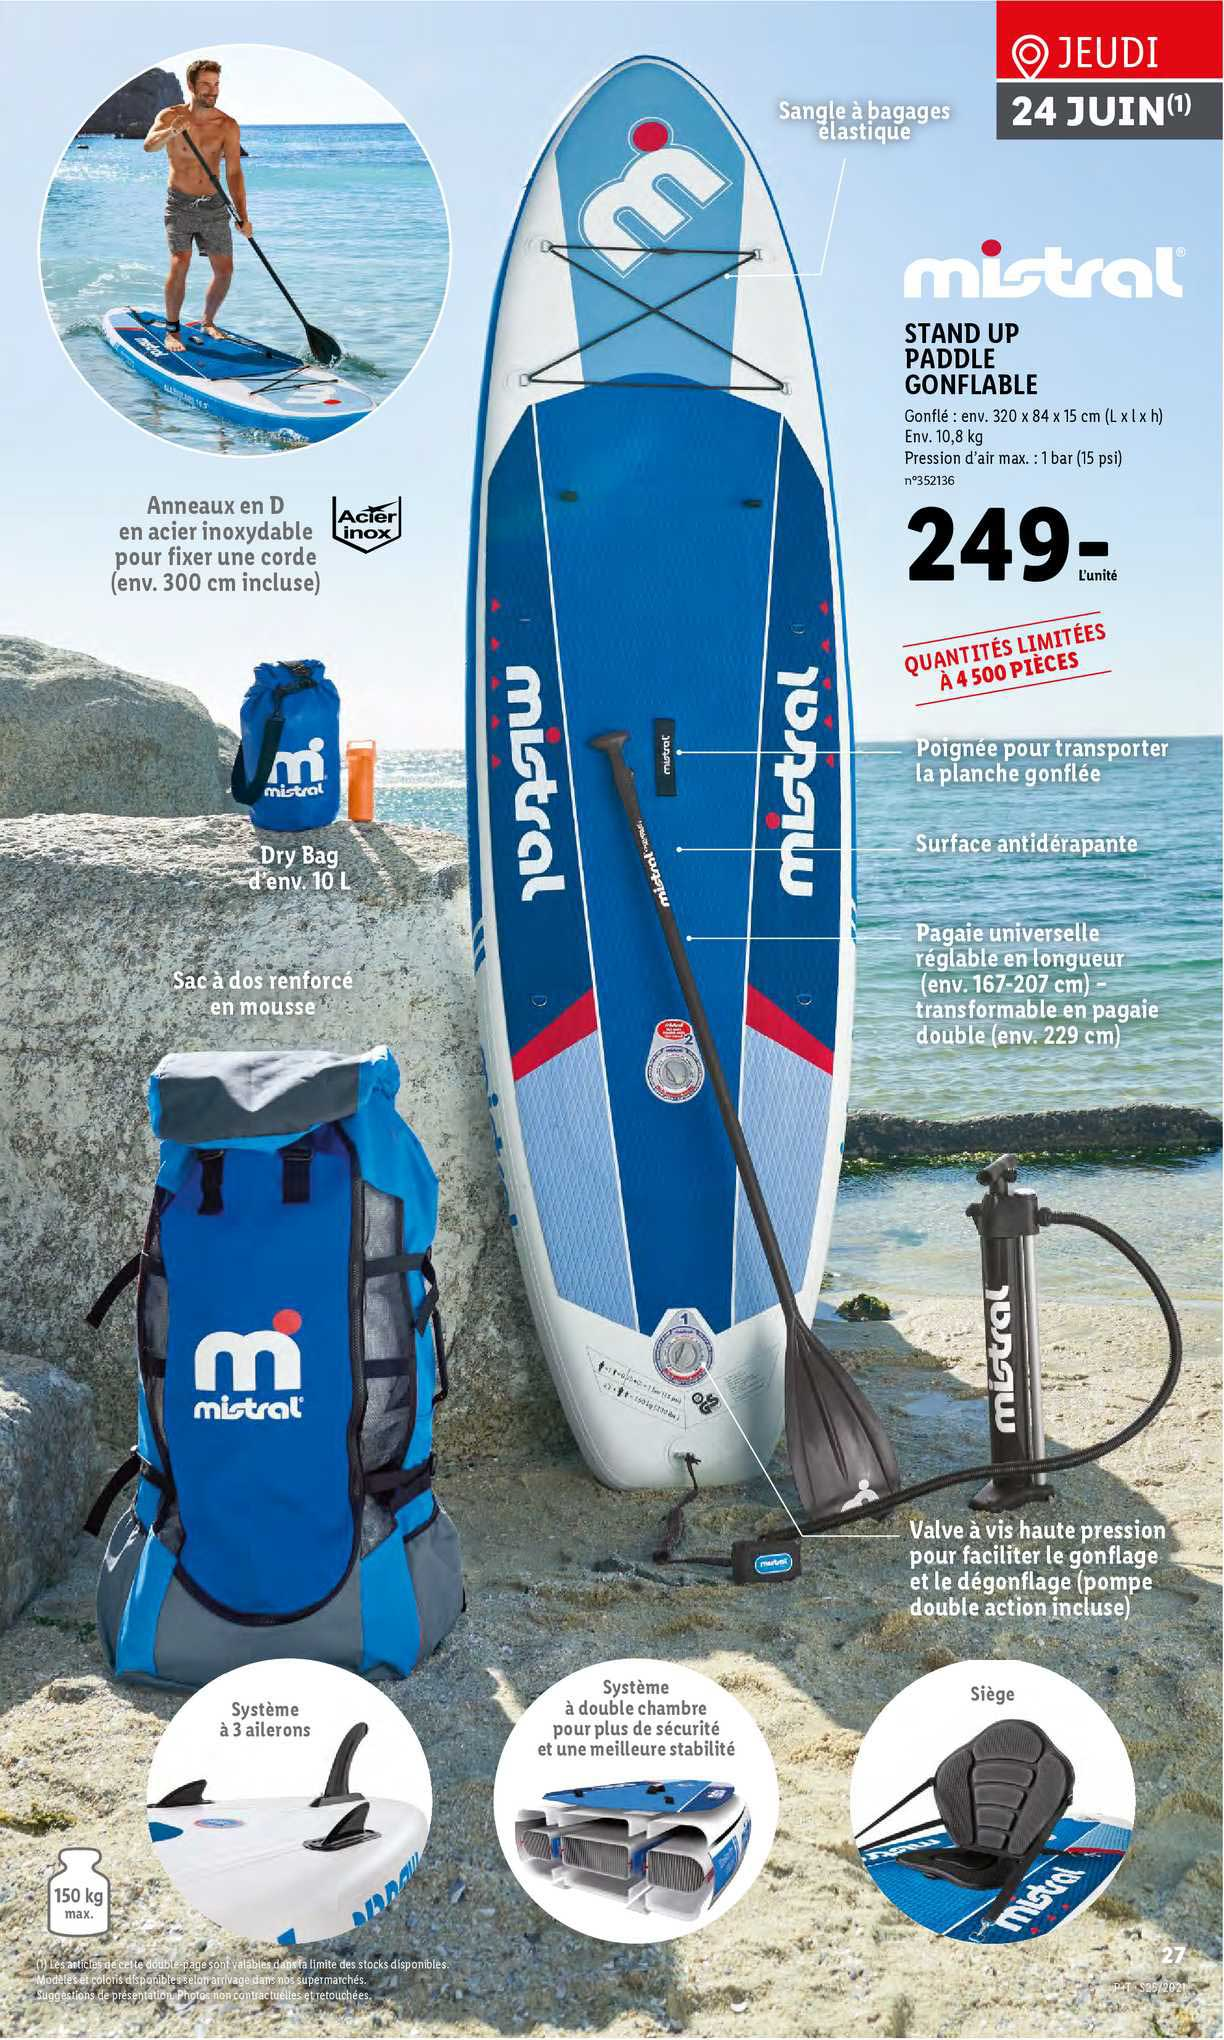 Lidl Mistral Stand Up Paddle Gonflable